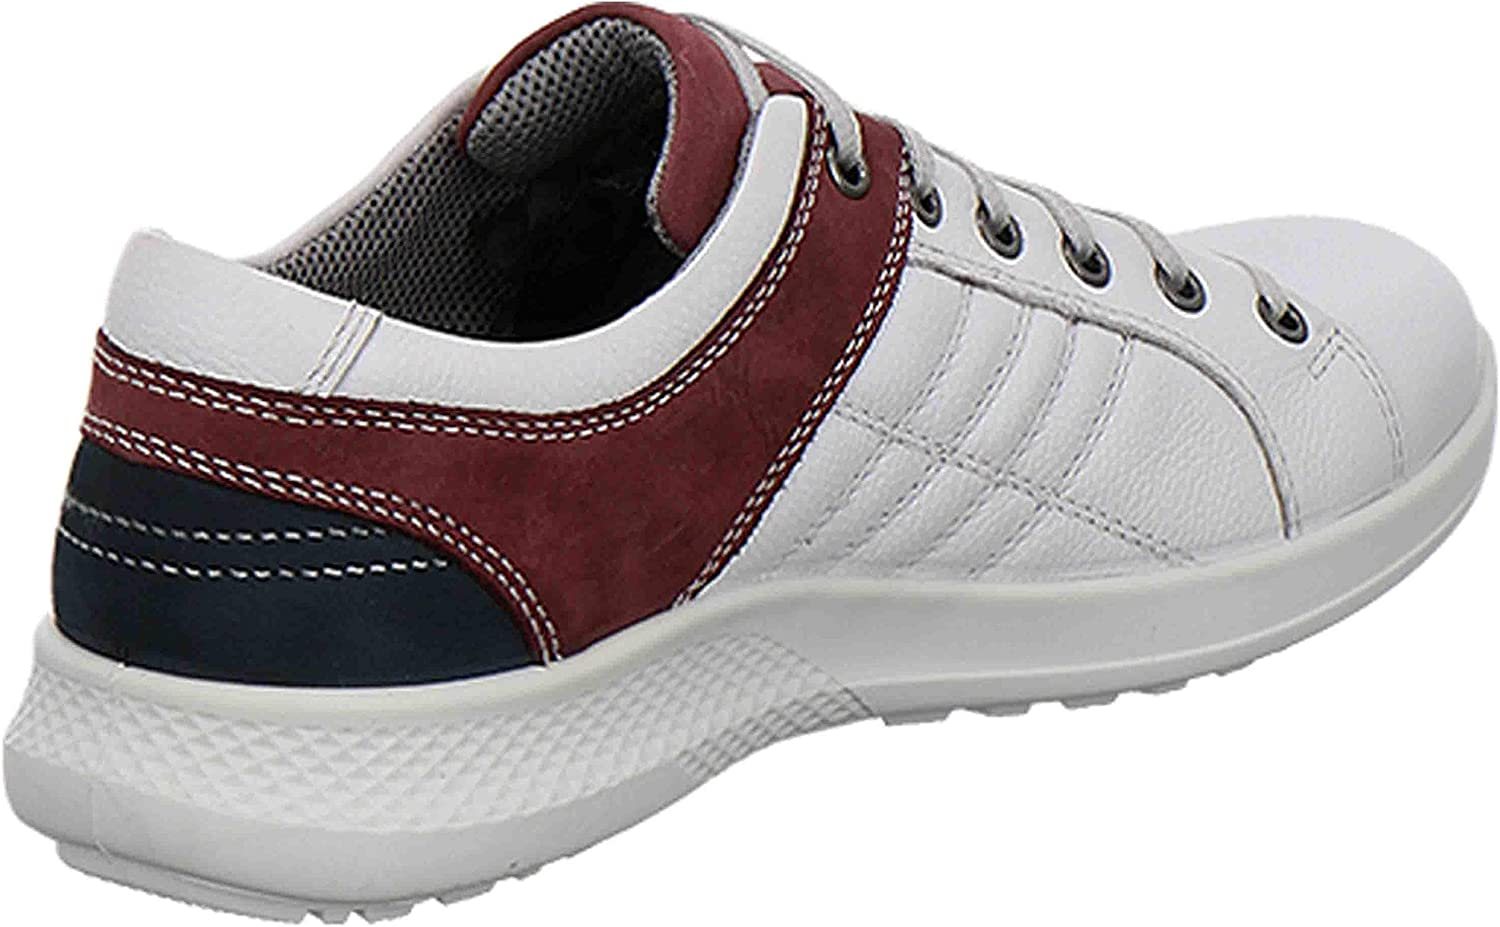 Jomos Campus II, Sneakers Basses Homme Multicolore Offwhite Oxblood 277 2044